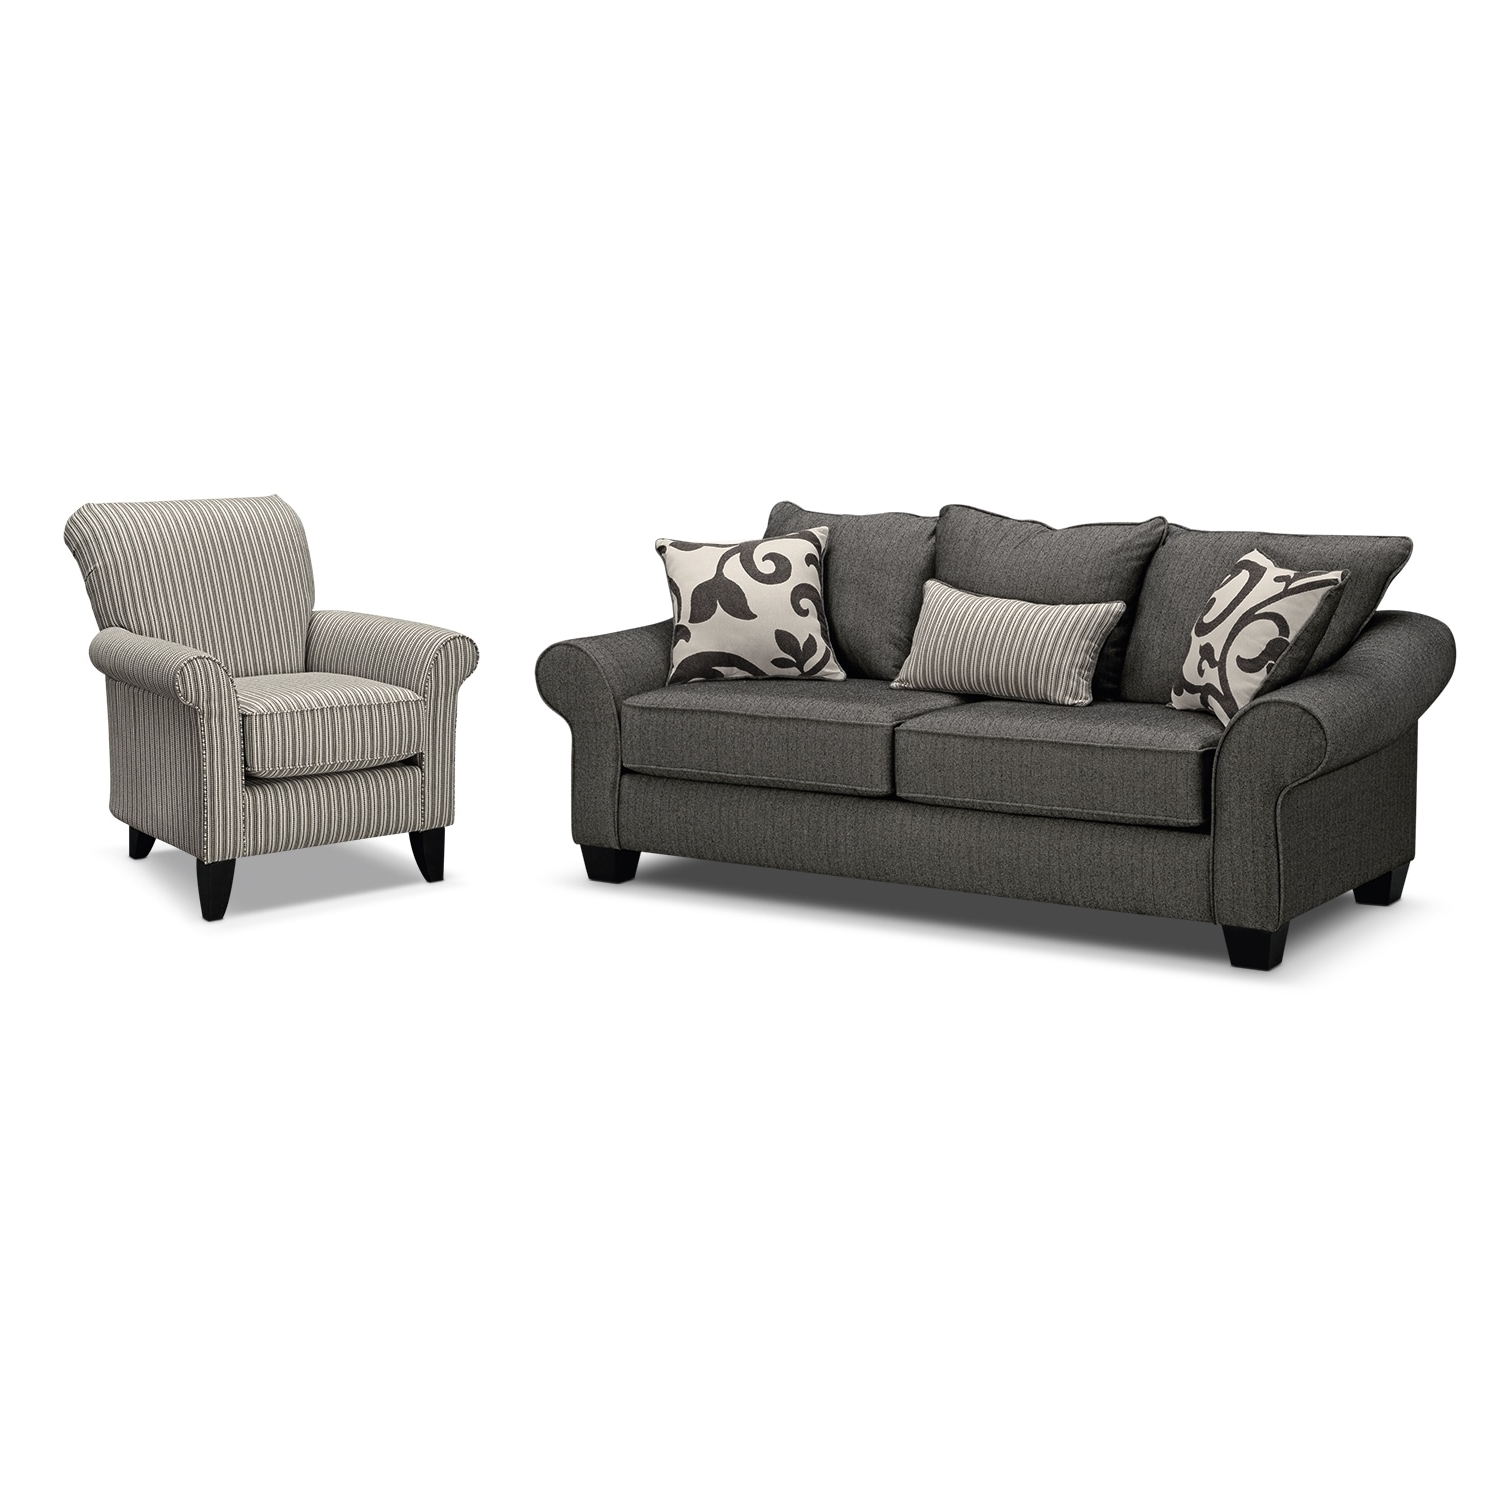 Colette Sofa And Accent Chair Set – Gray (View 7 of 15)